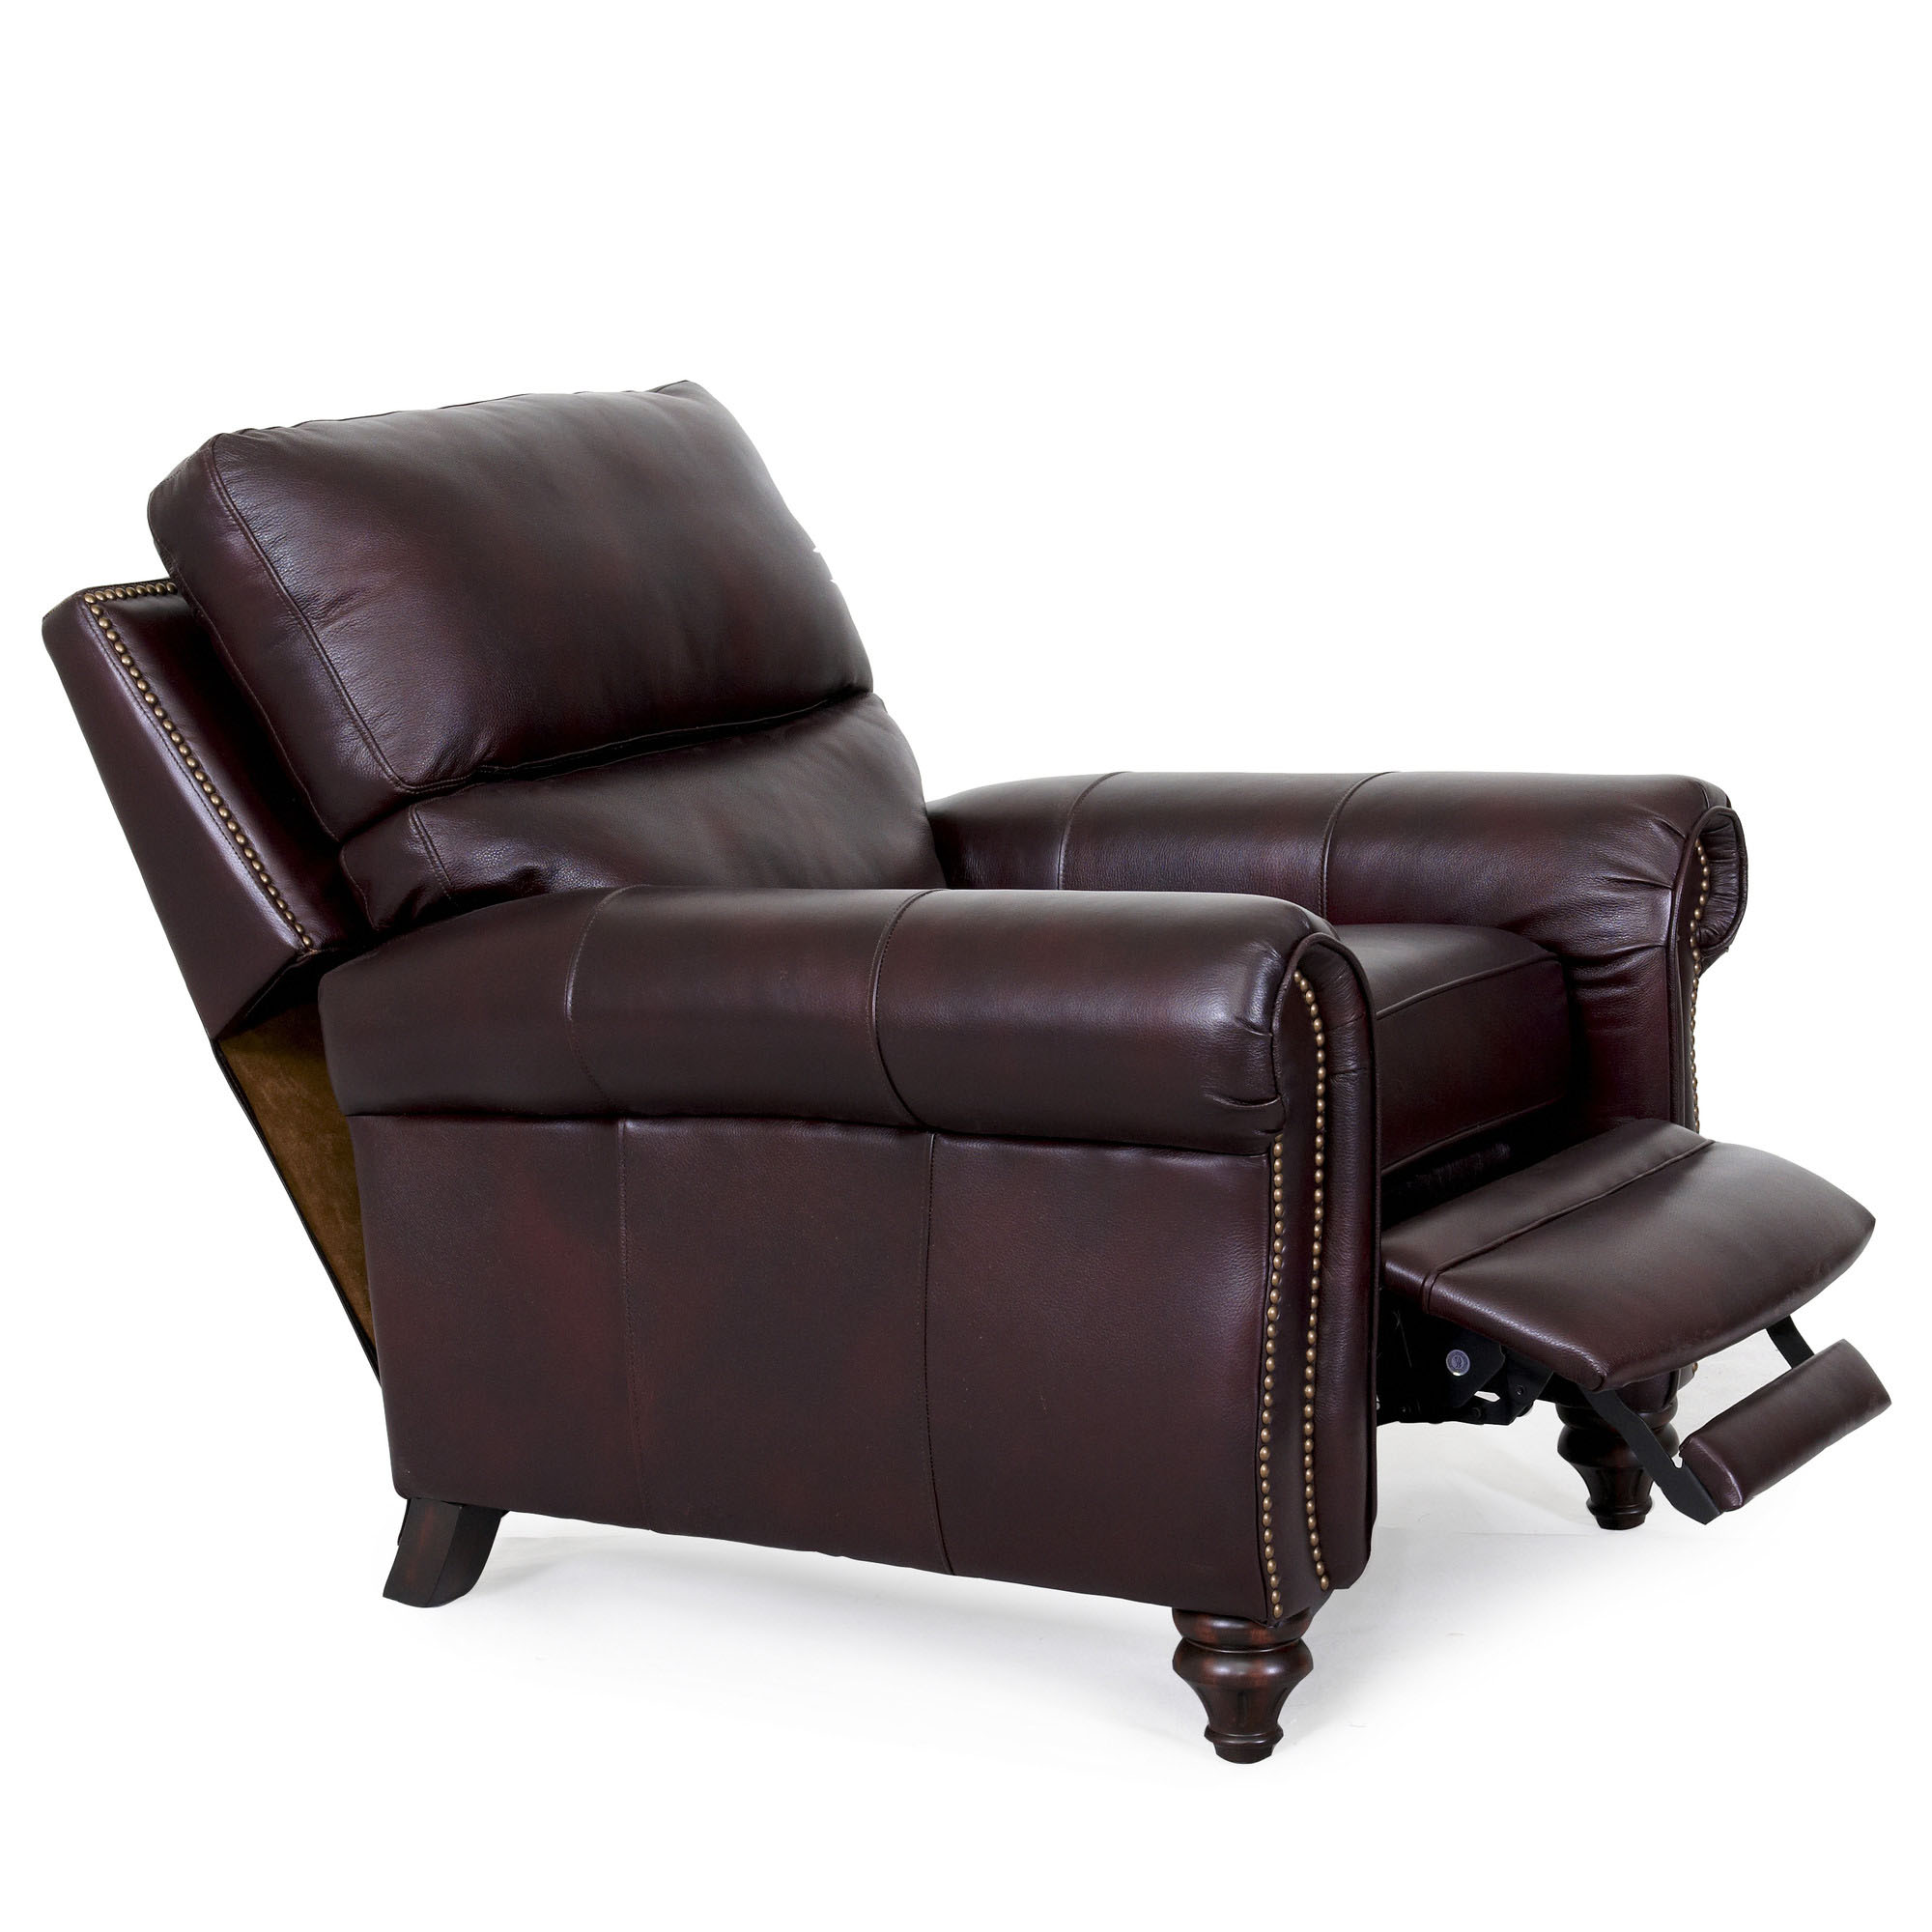 Leather Recliner Chairs Barcalounger Dalton Ii Recliner Chair Leather Recliner